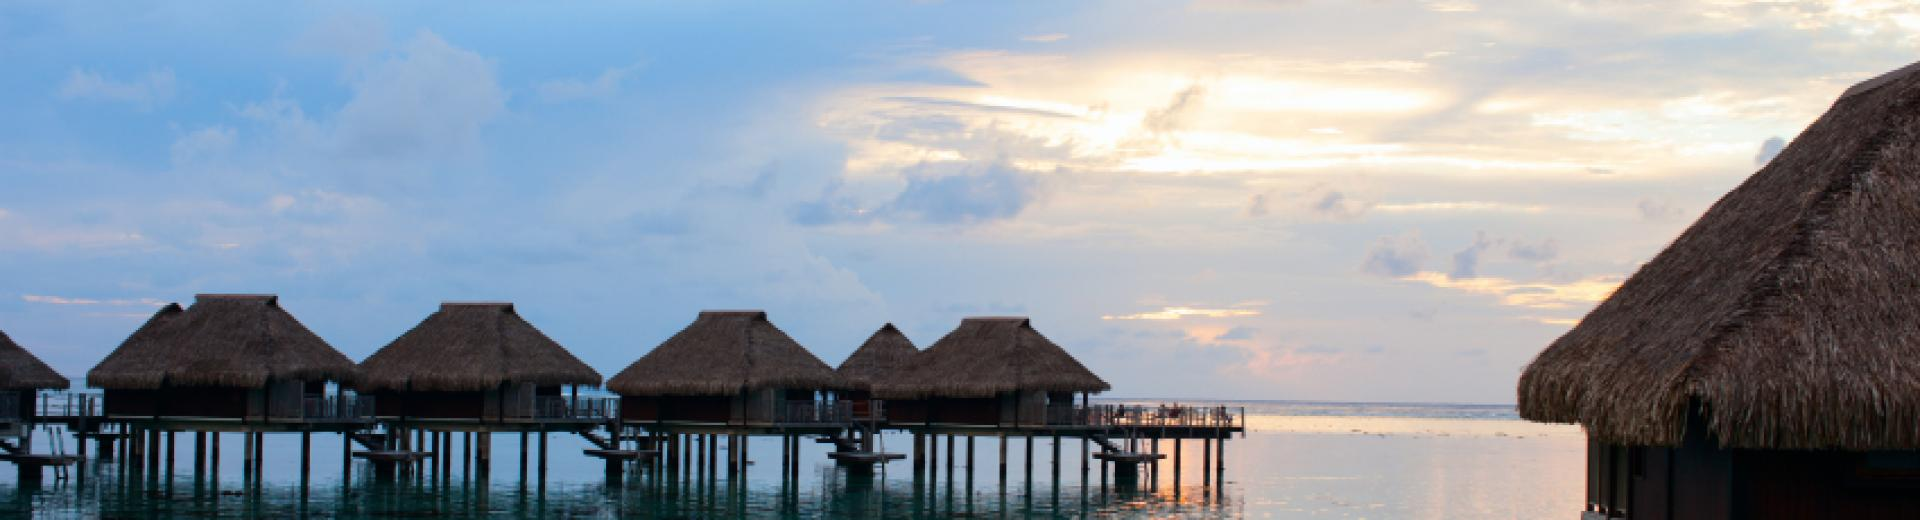 Overwater Bungalows at Sunset